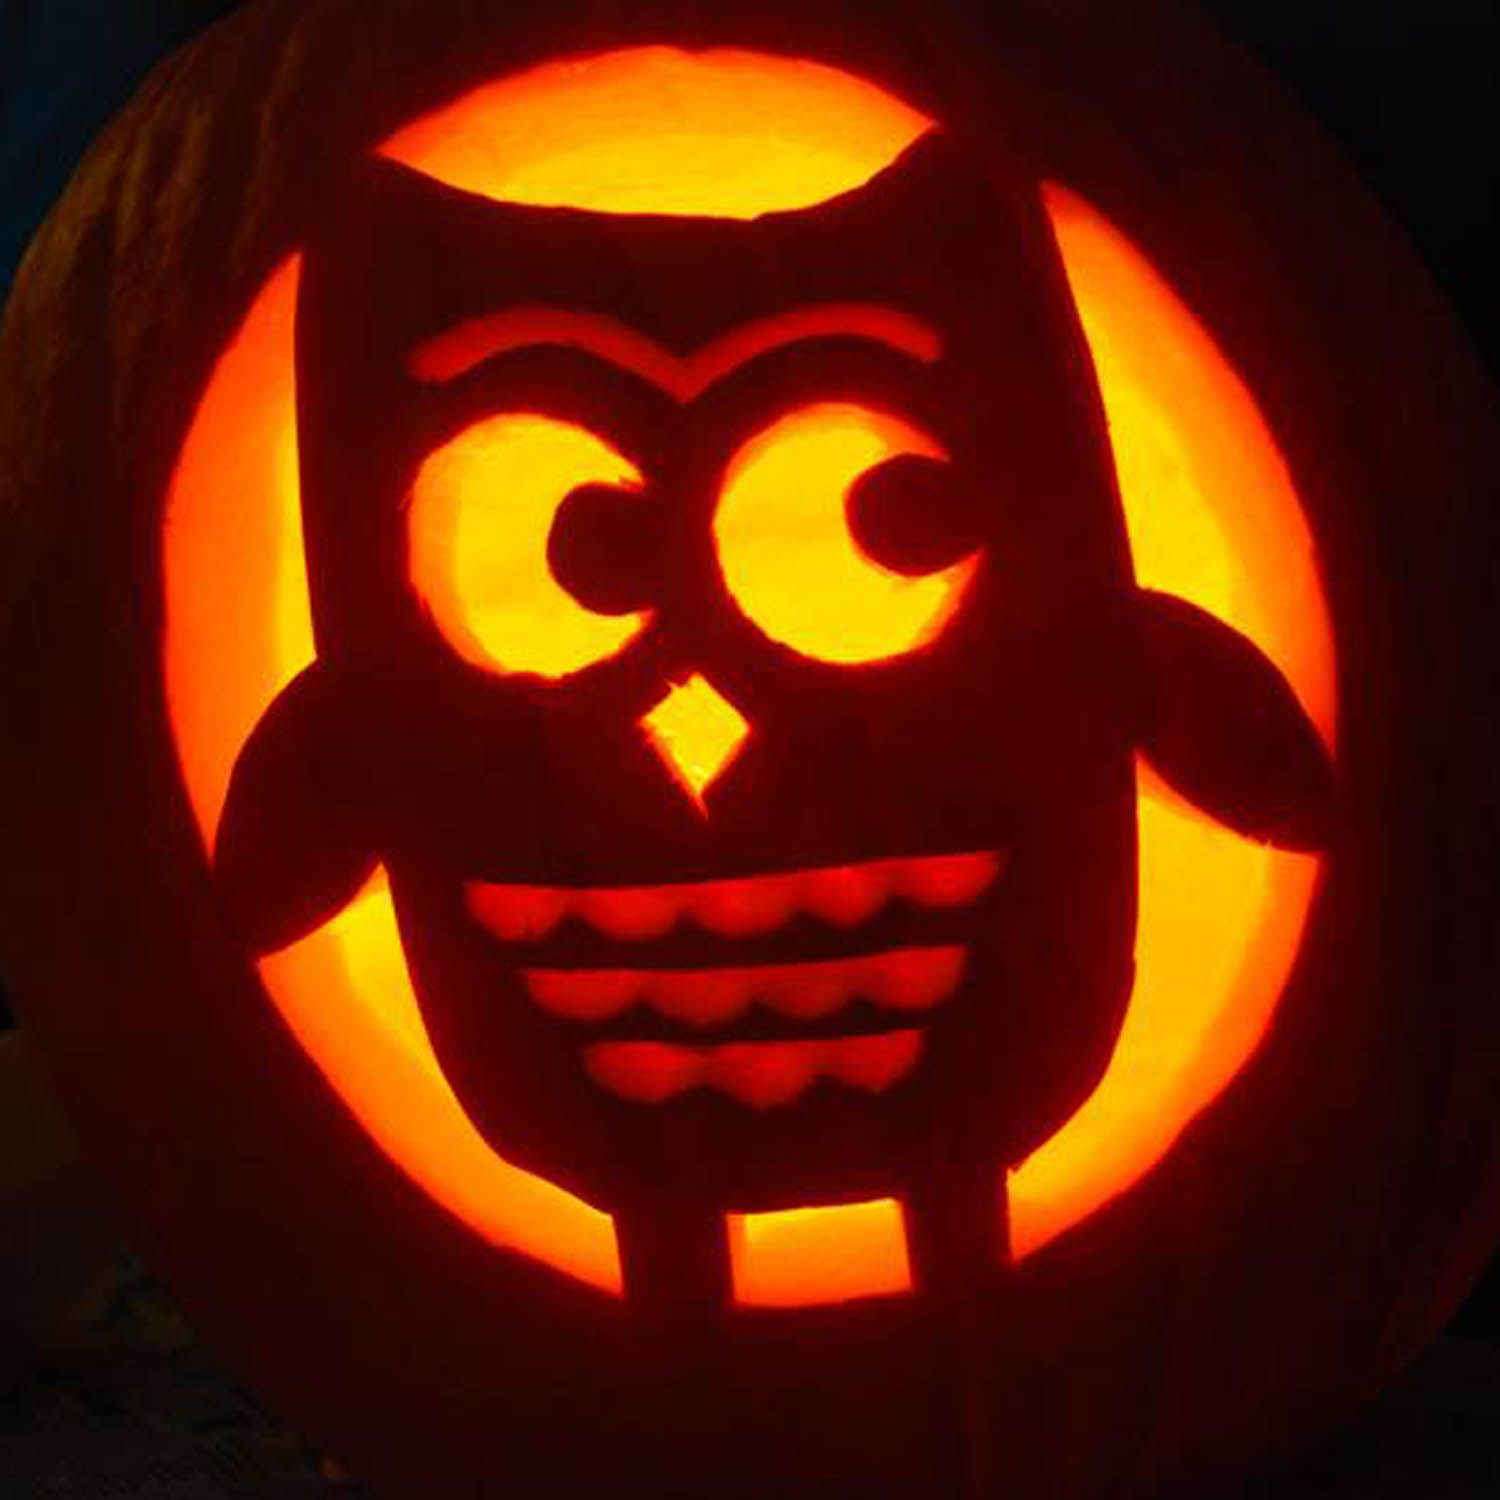 Awesome pumpkin carving templates out pretty good Awesome pumpkin designs